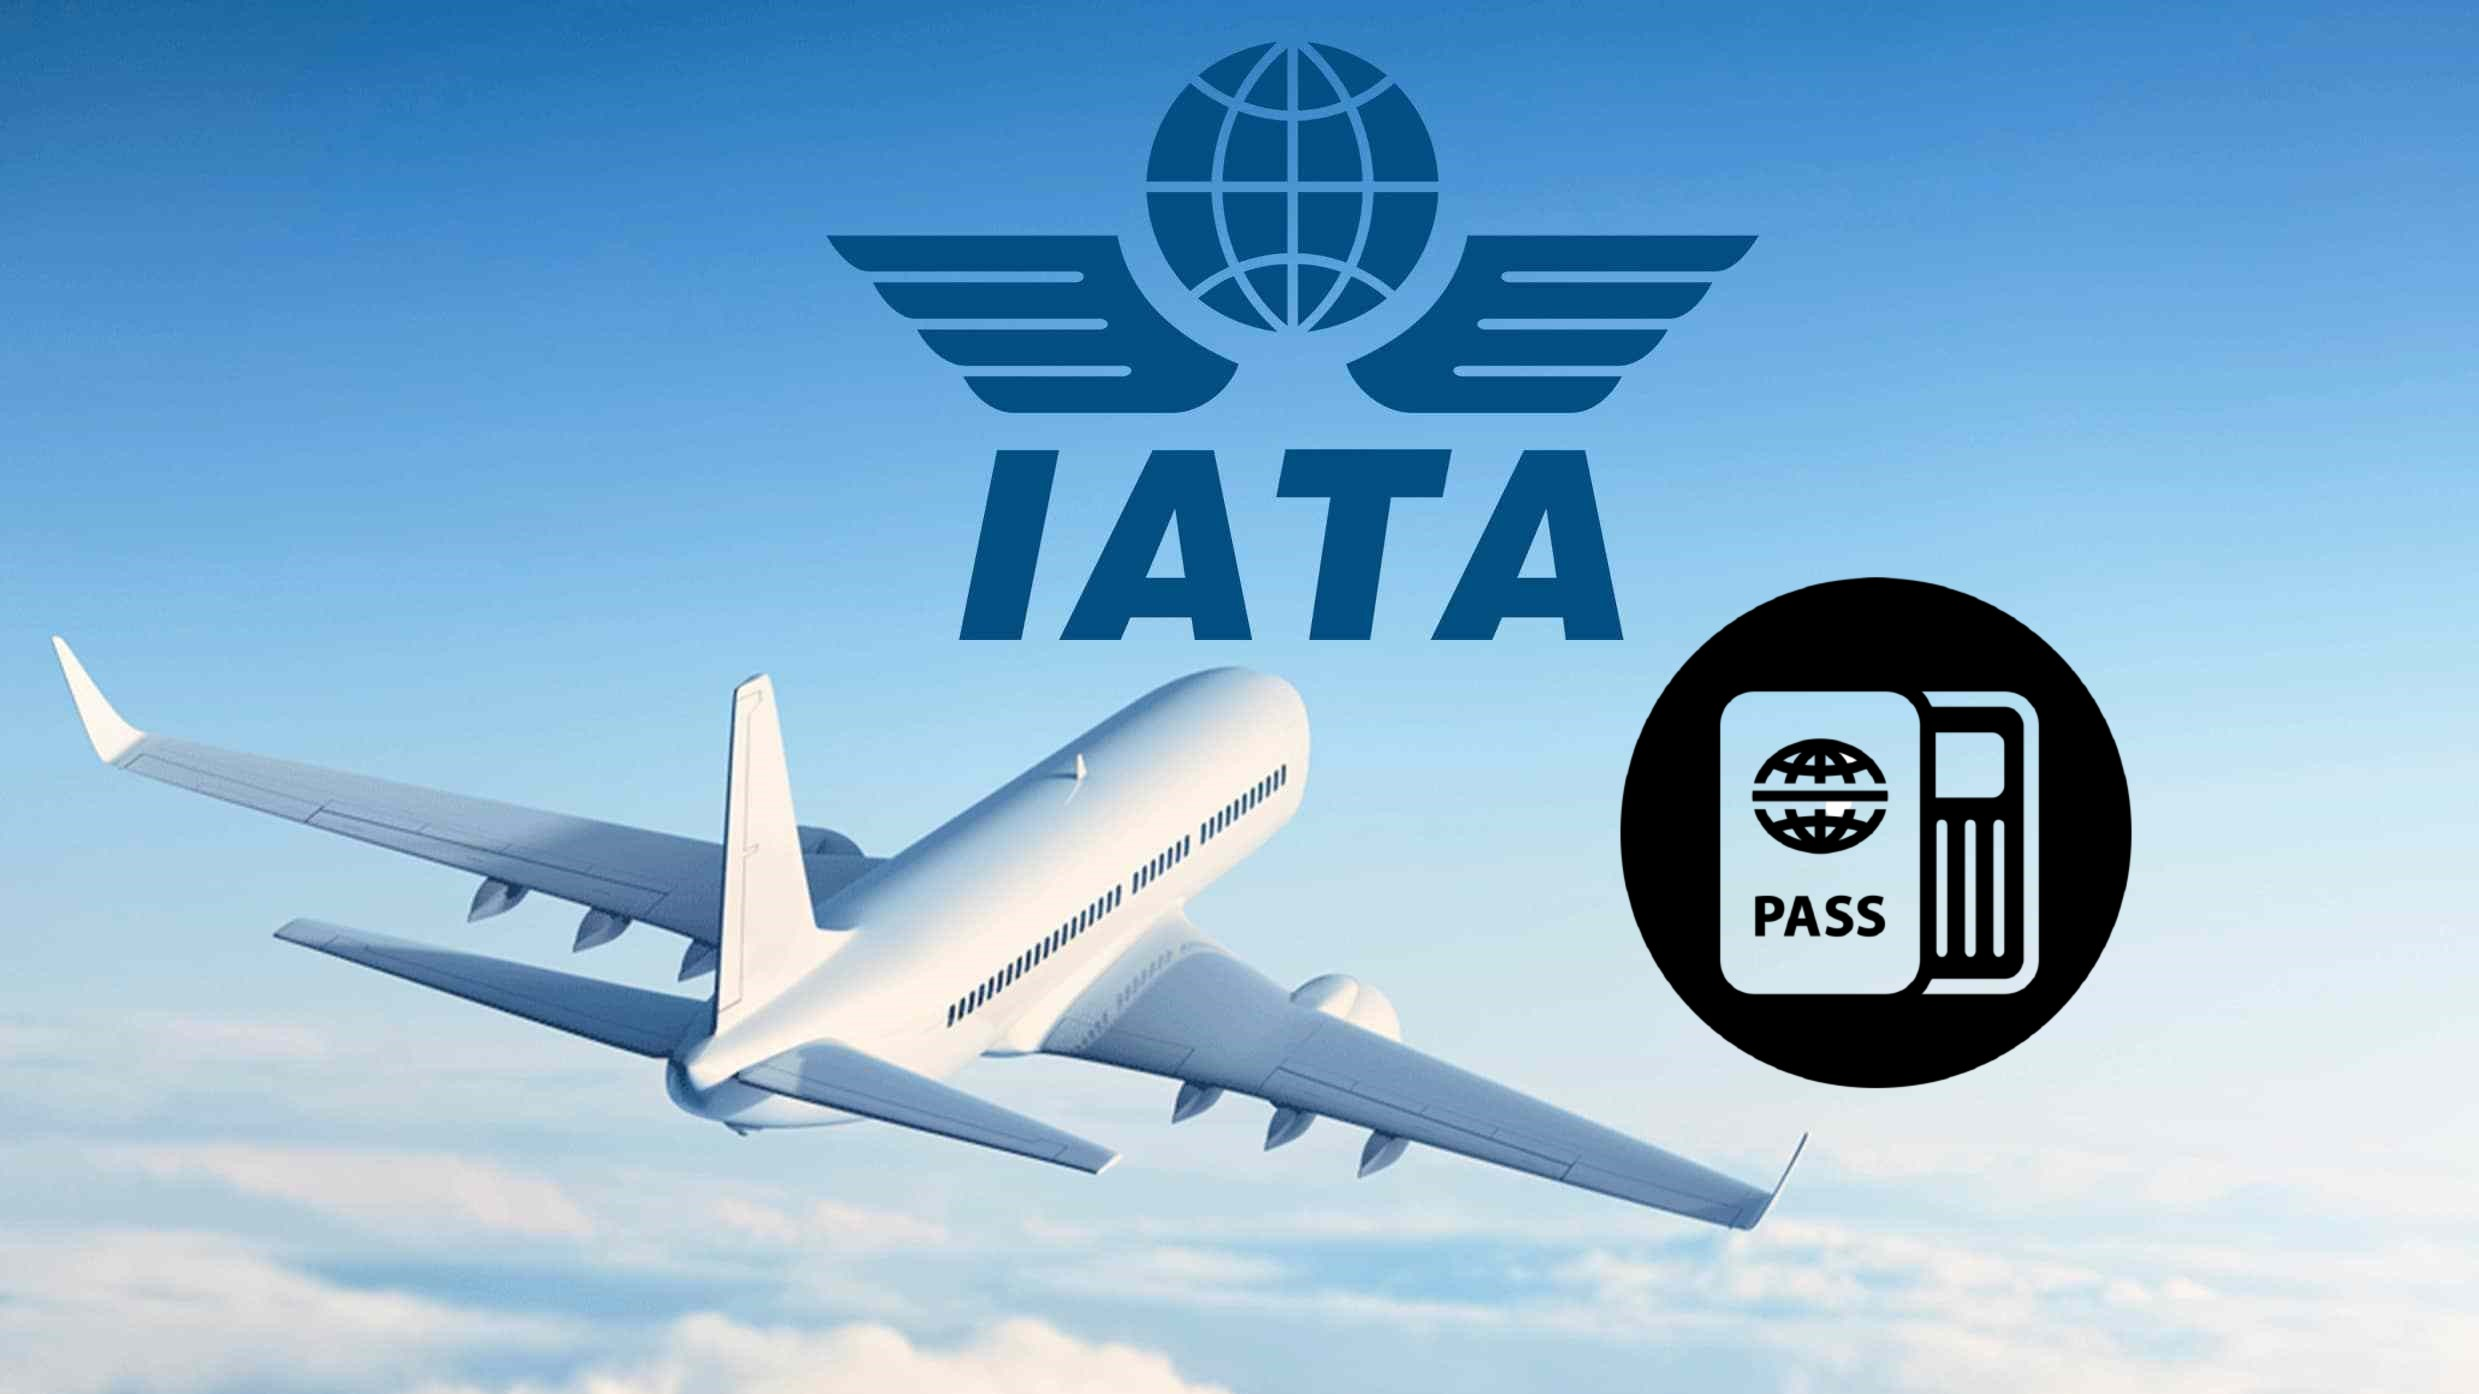 IATA-Travel Pass